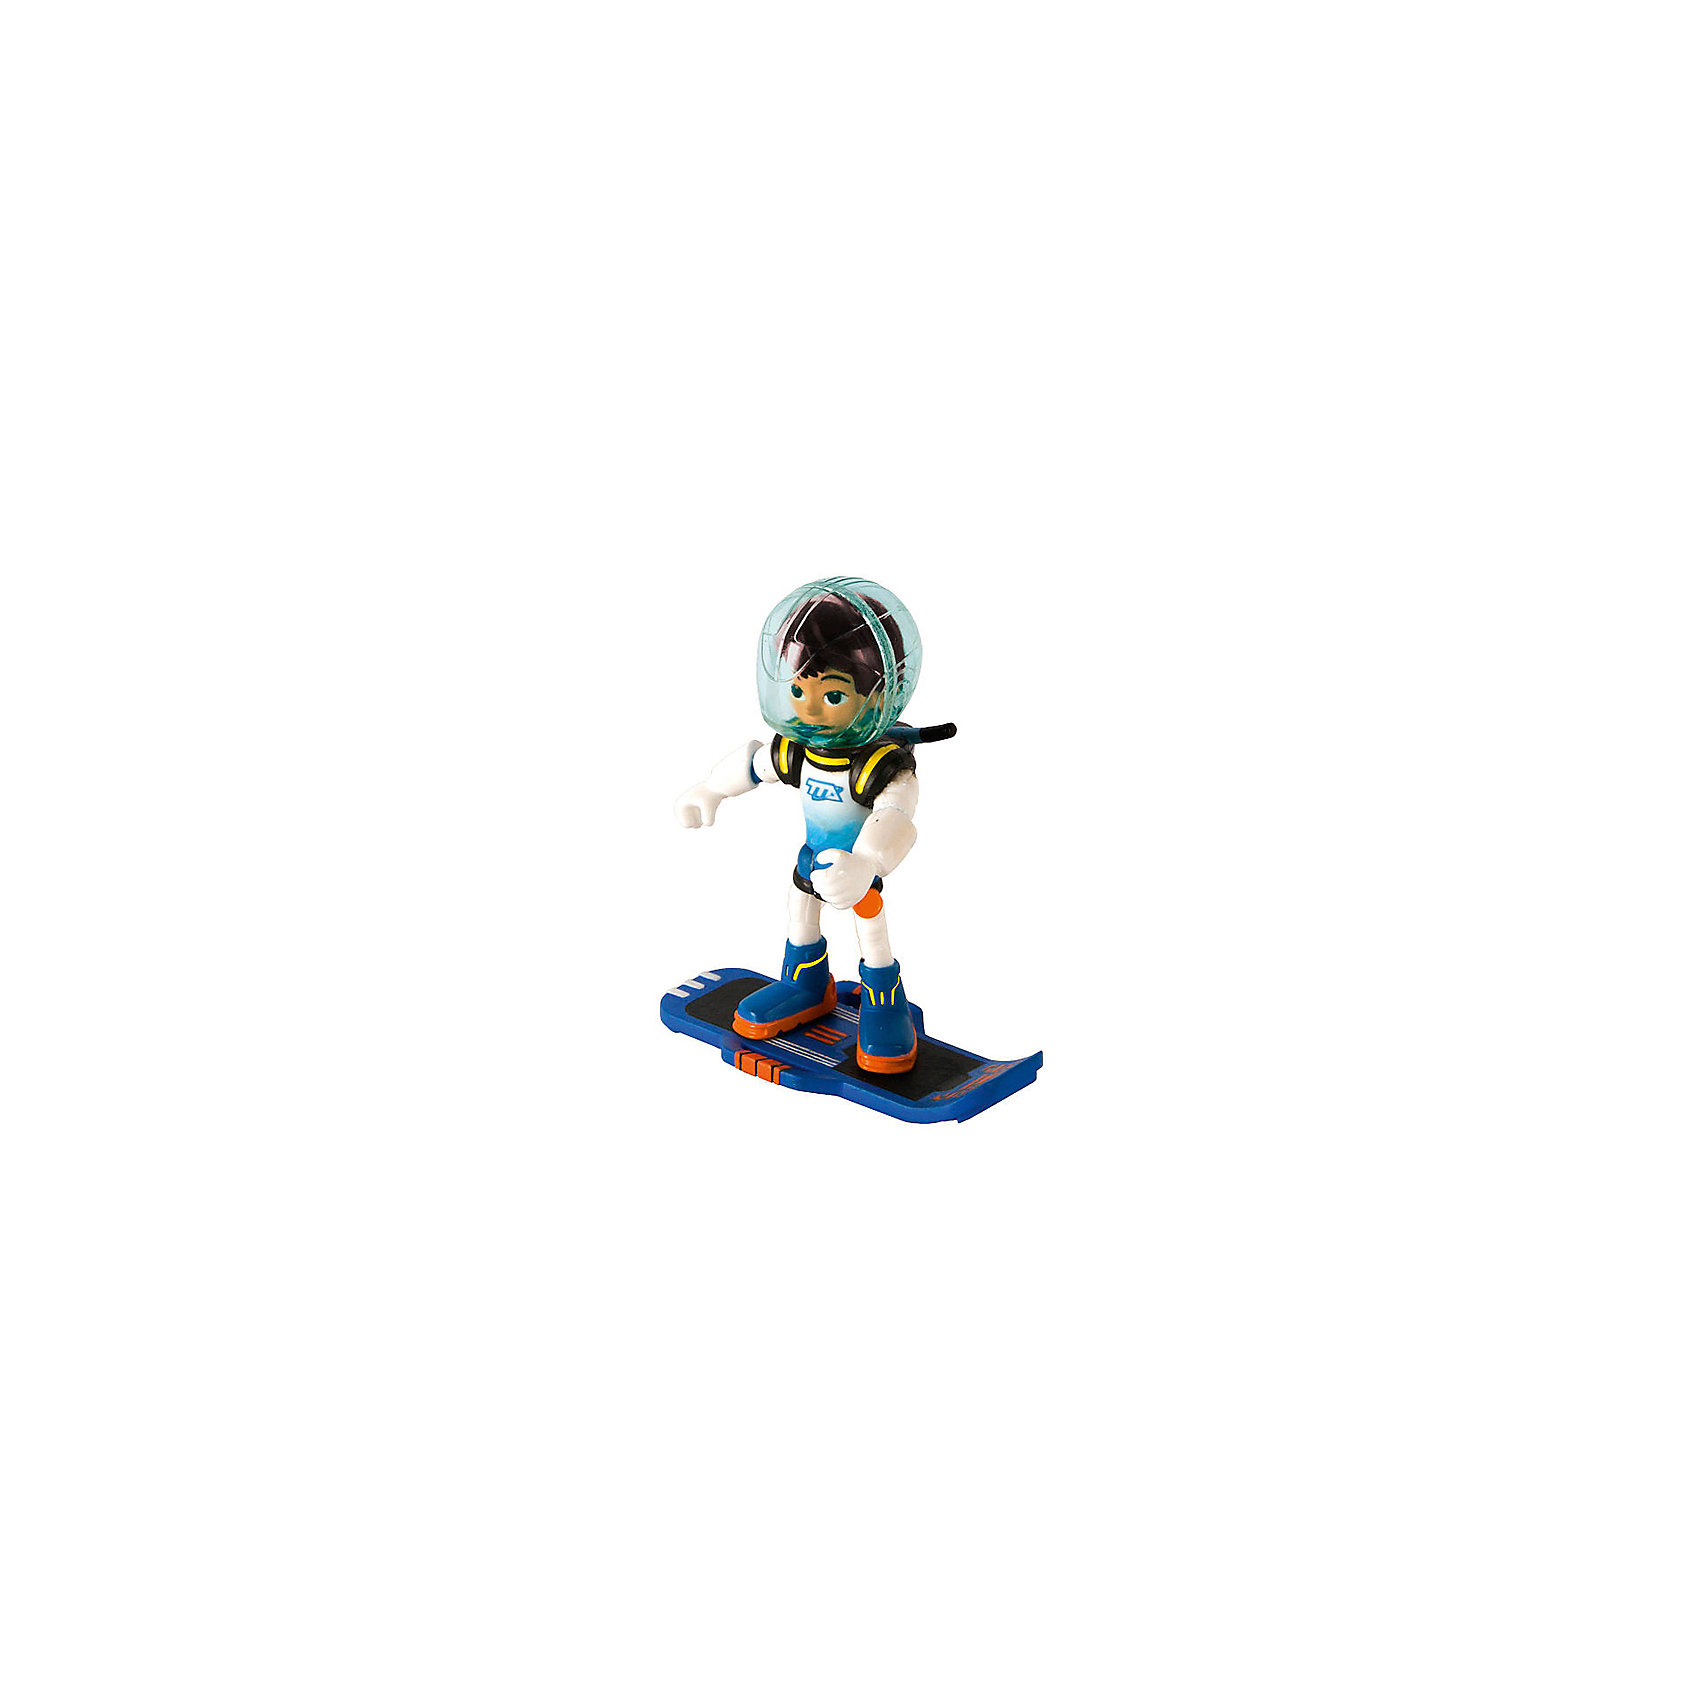 - Фигурка Майлз с бластбордом, 7 см, MILES miles from tomorrowland гравитационный диск